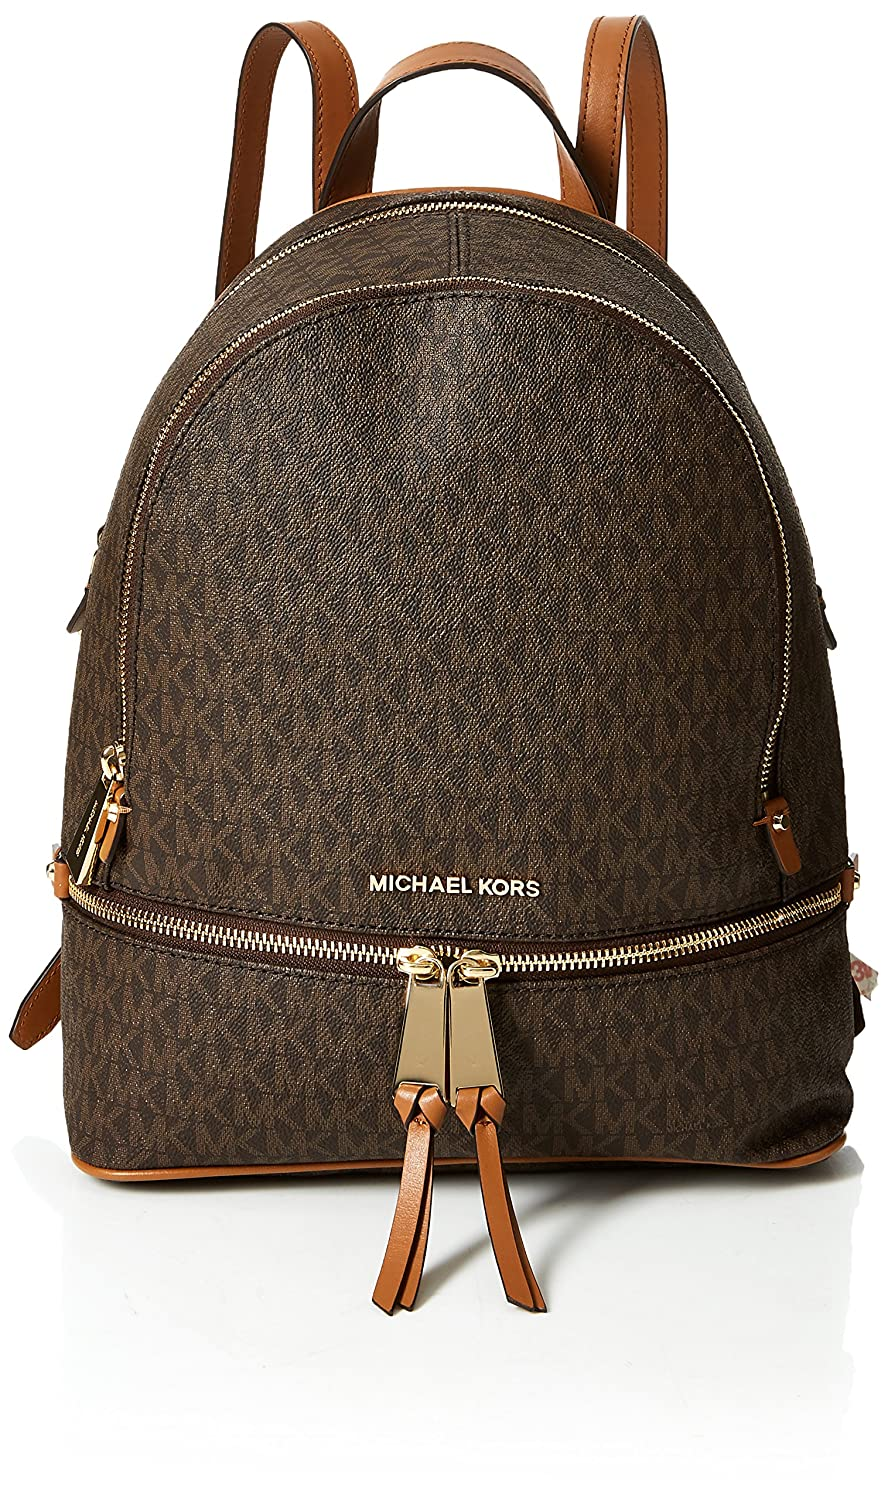 Michael Kors Rhea Small Backpack Brown- Fenix Toulouse Handball 1379f5f99a